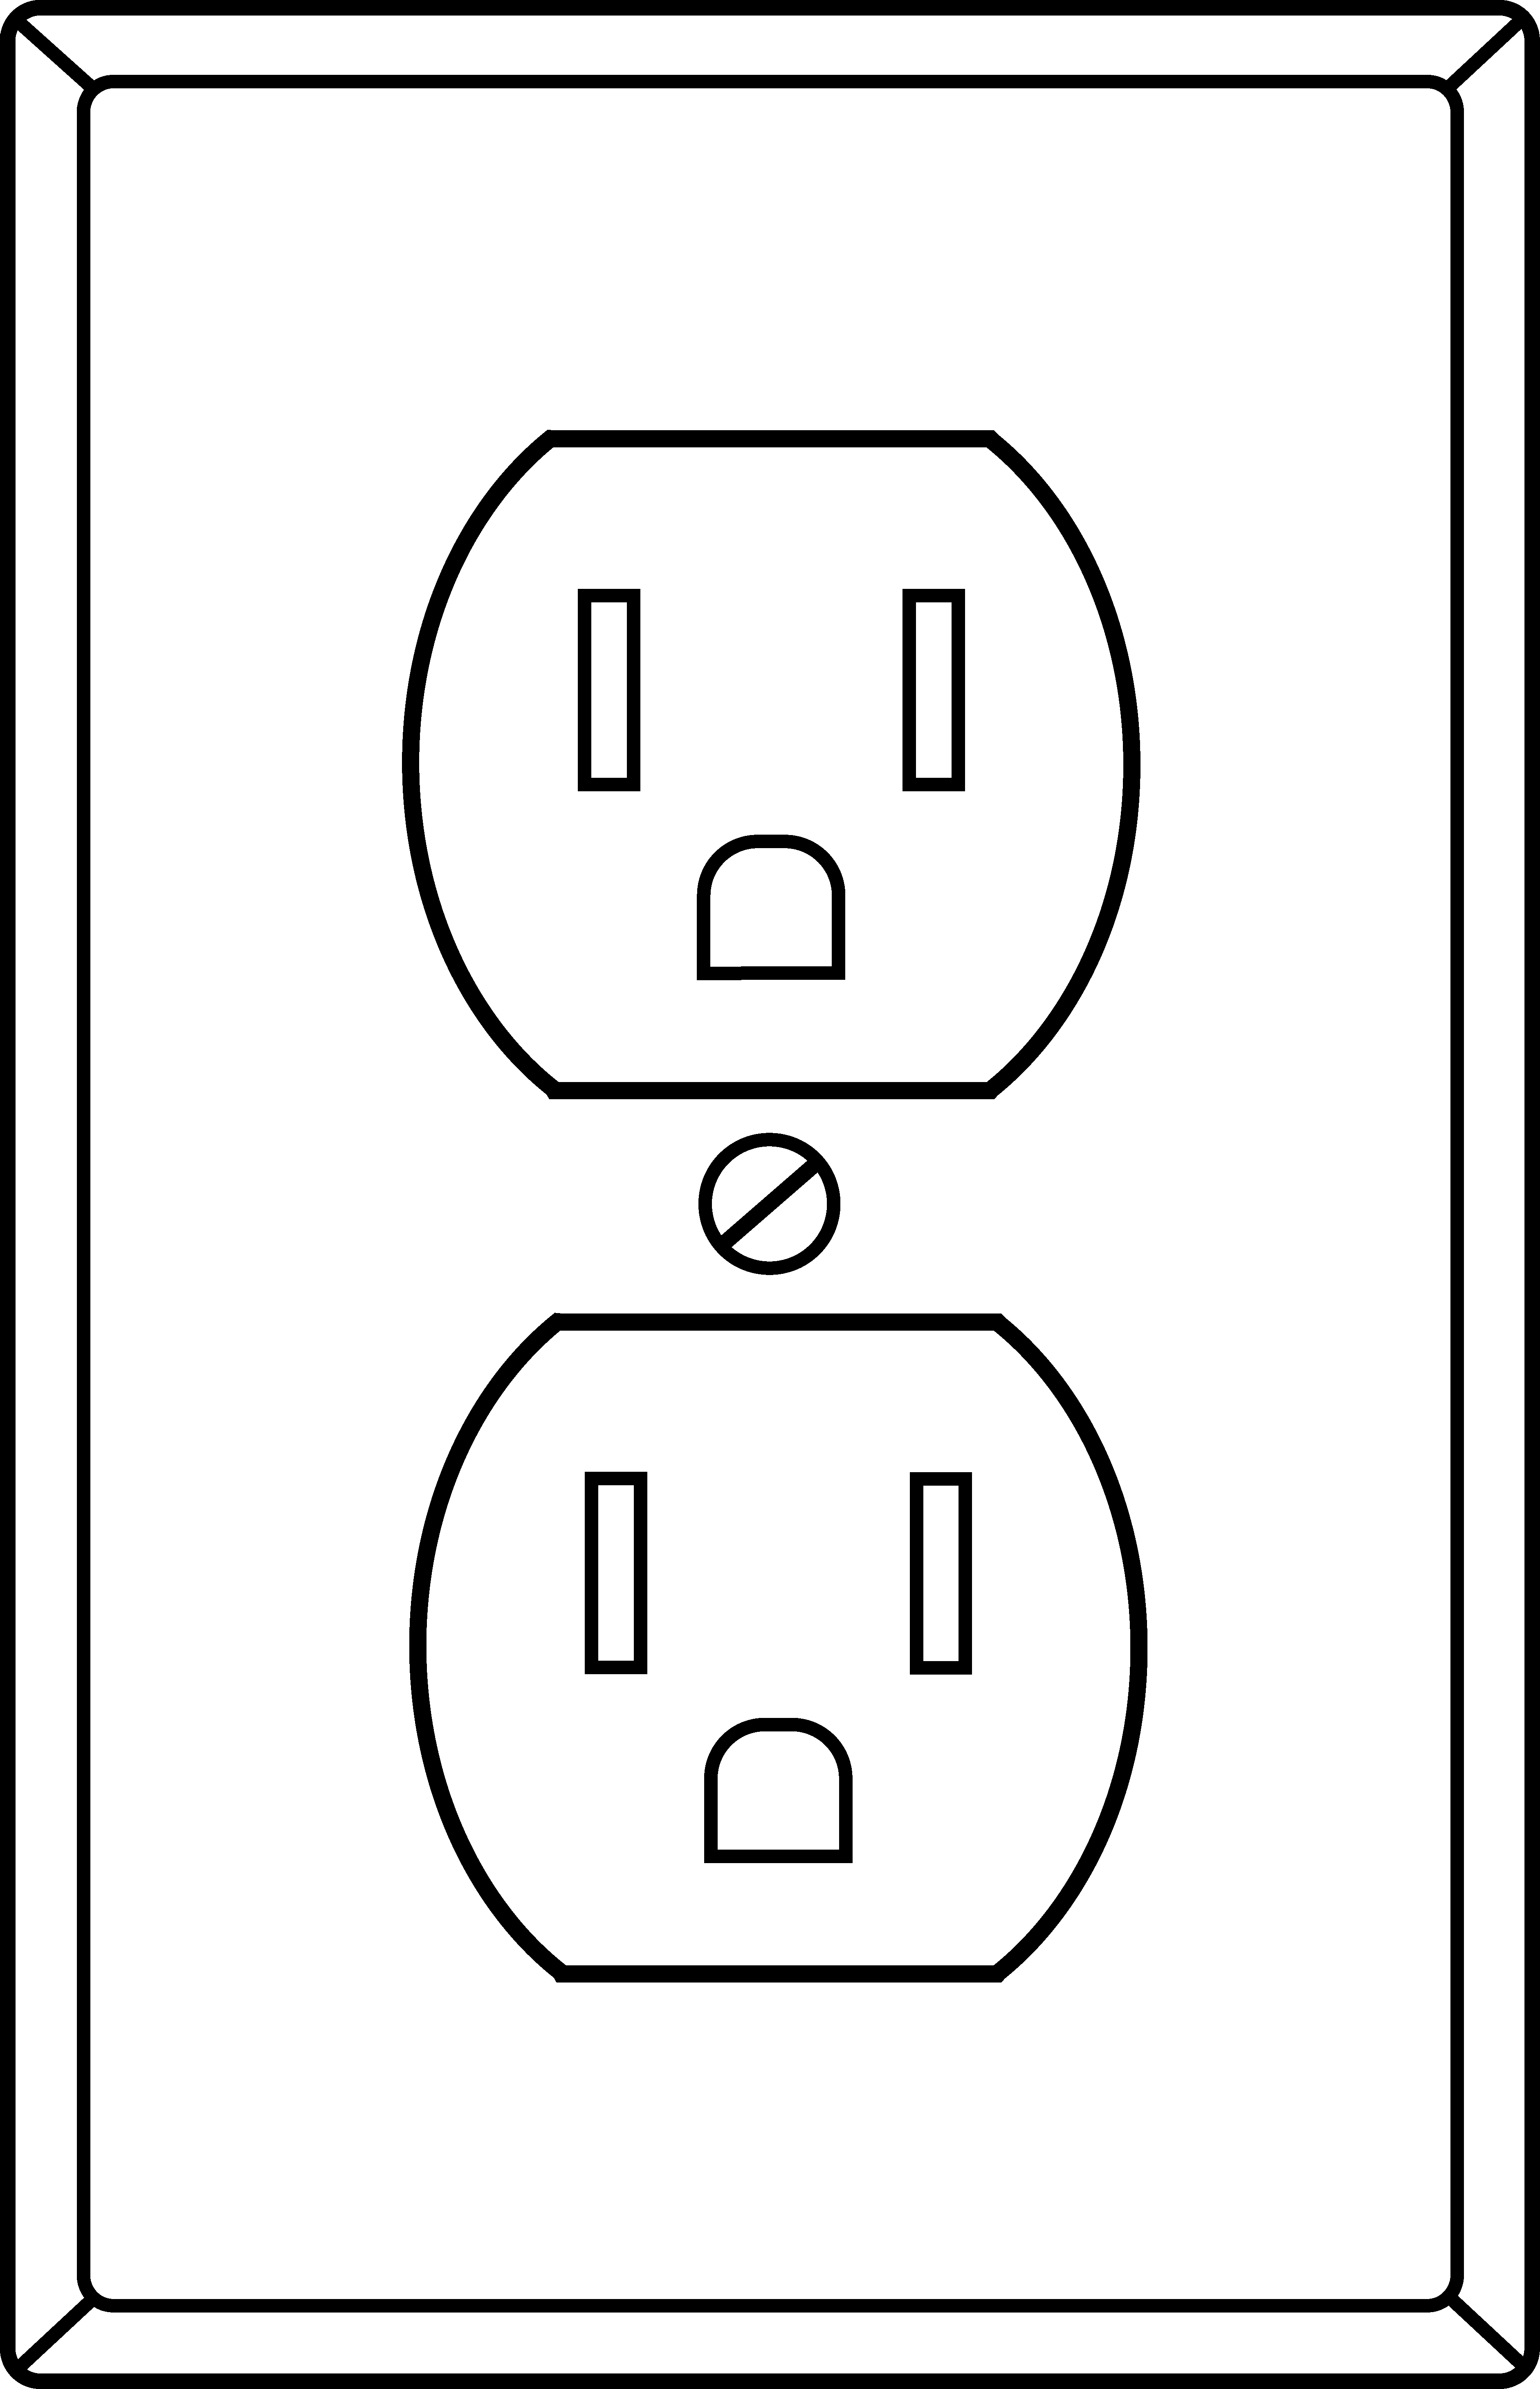 Electrical clipart black and white. Image of symbols clip